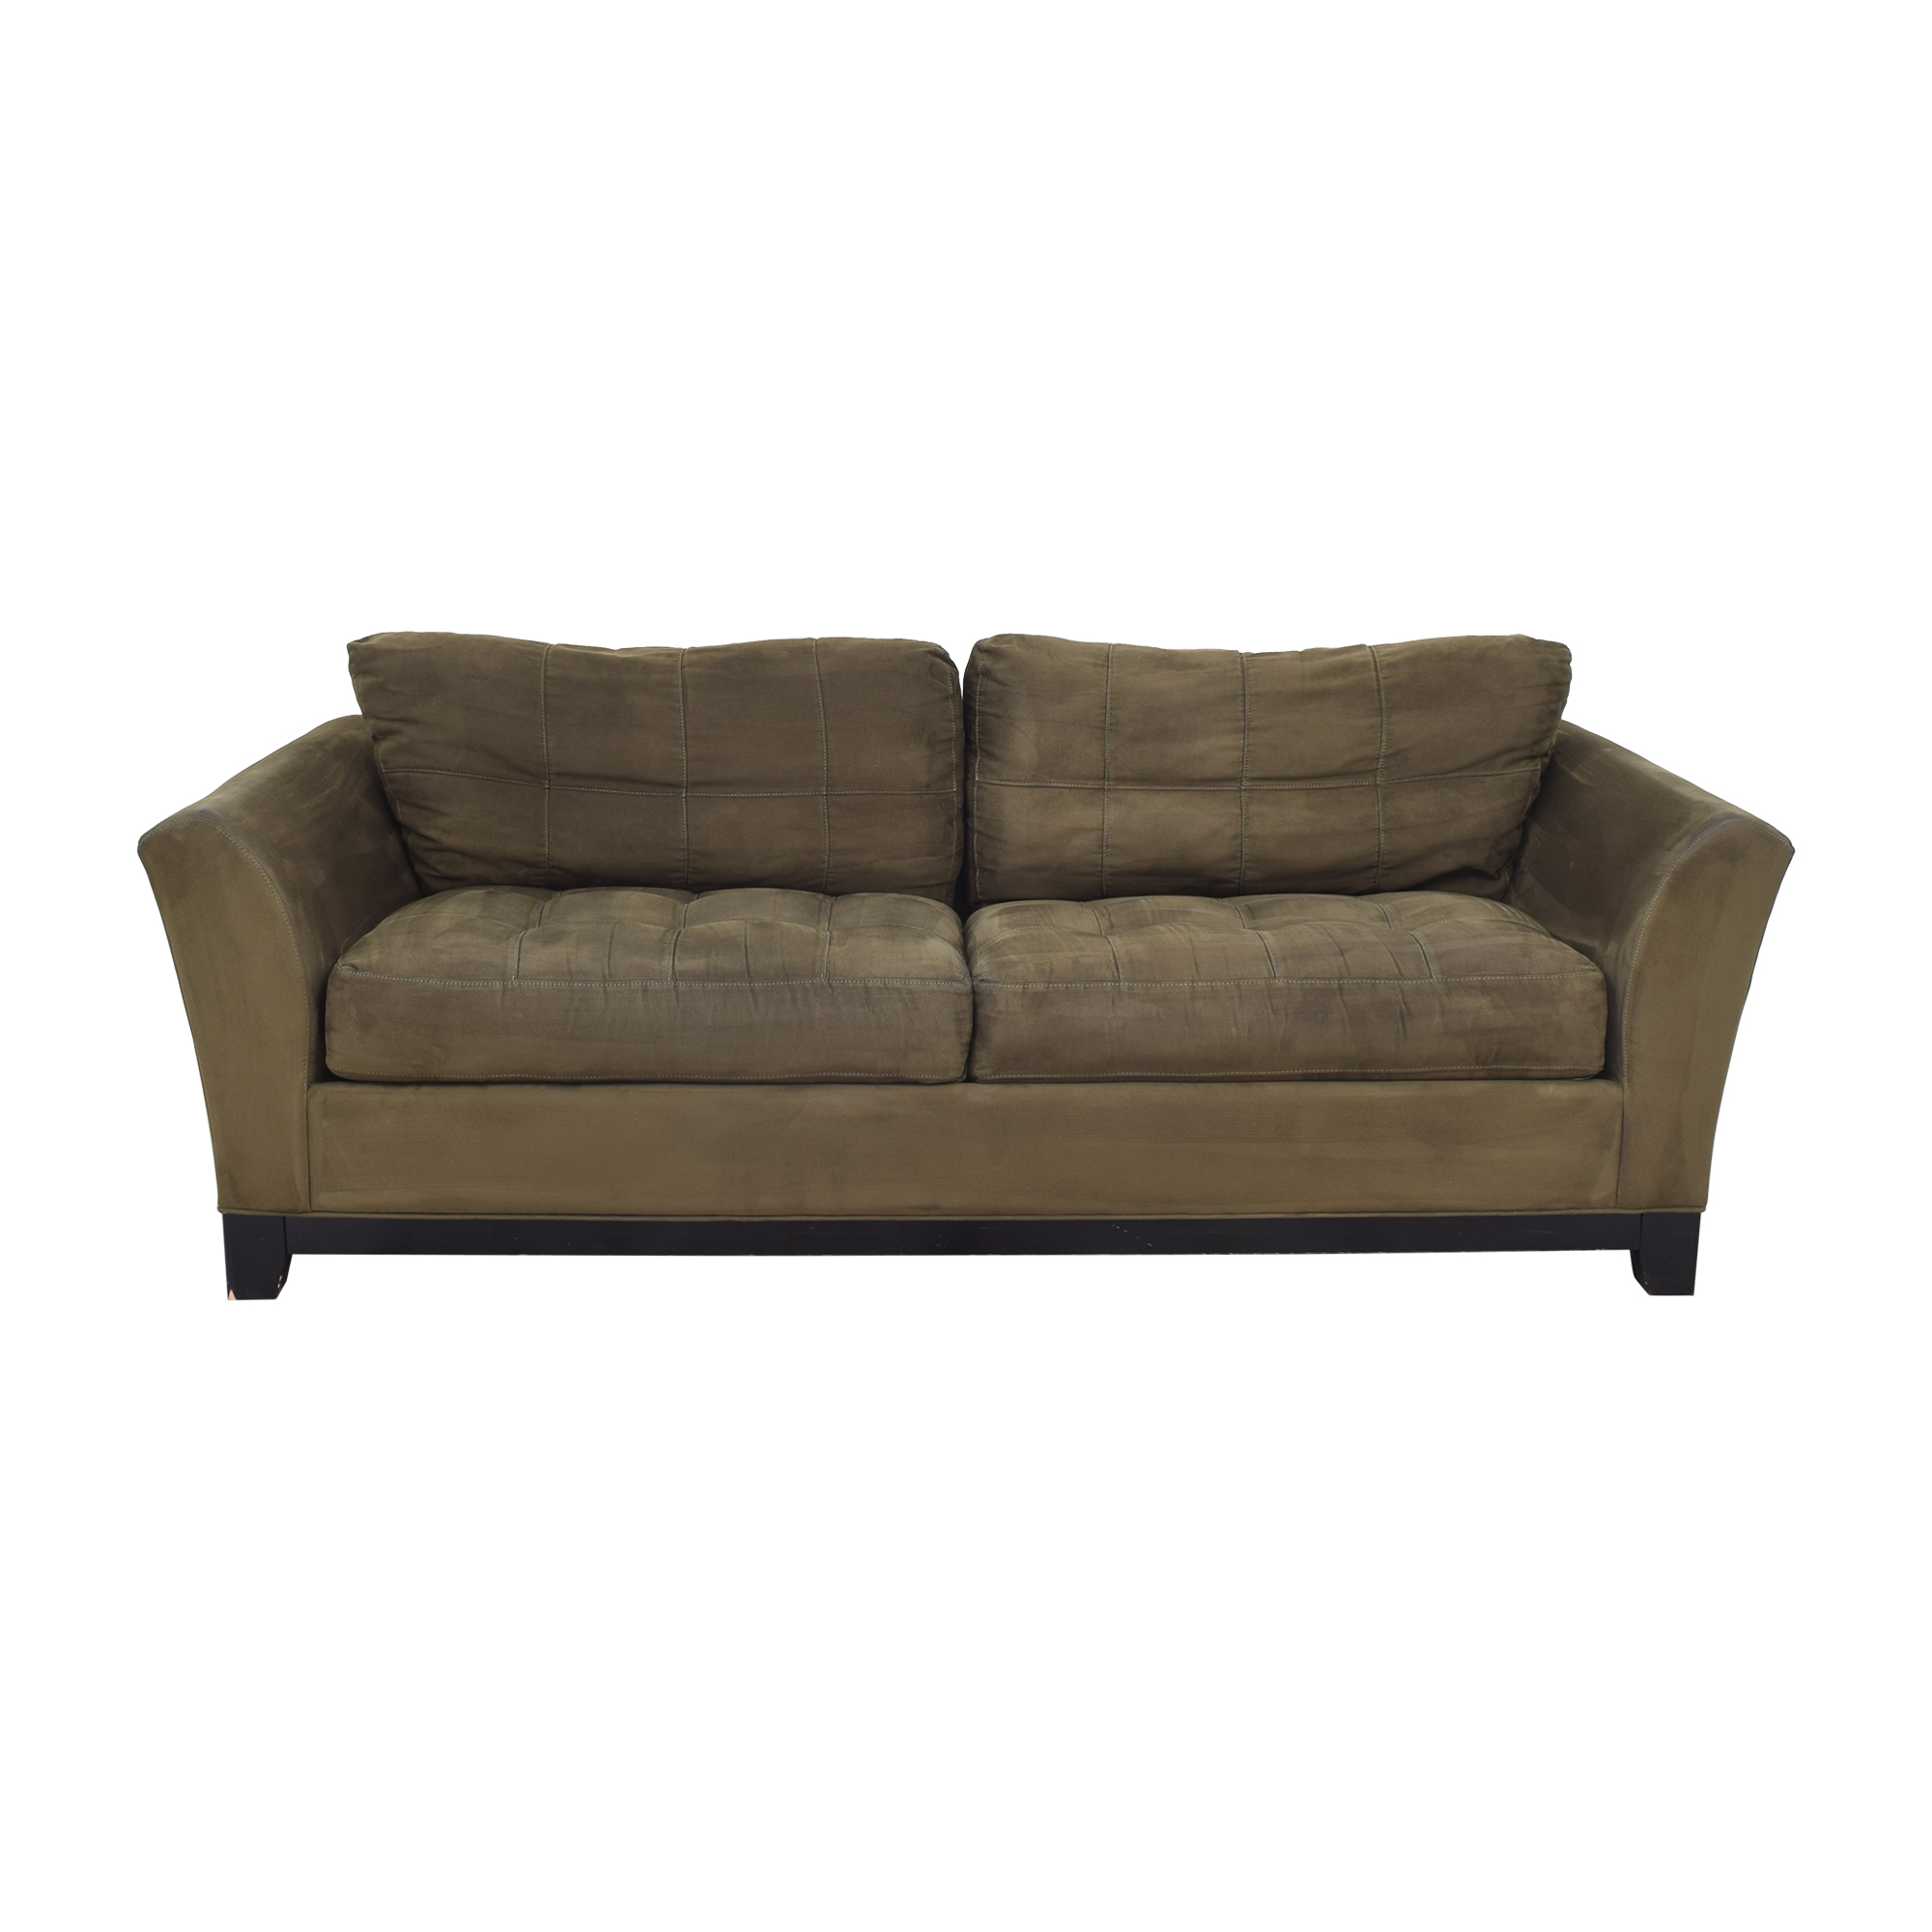 Raymour & Flanigan Raymour & Flanigan Sofa dark brown